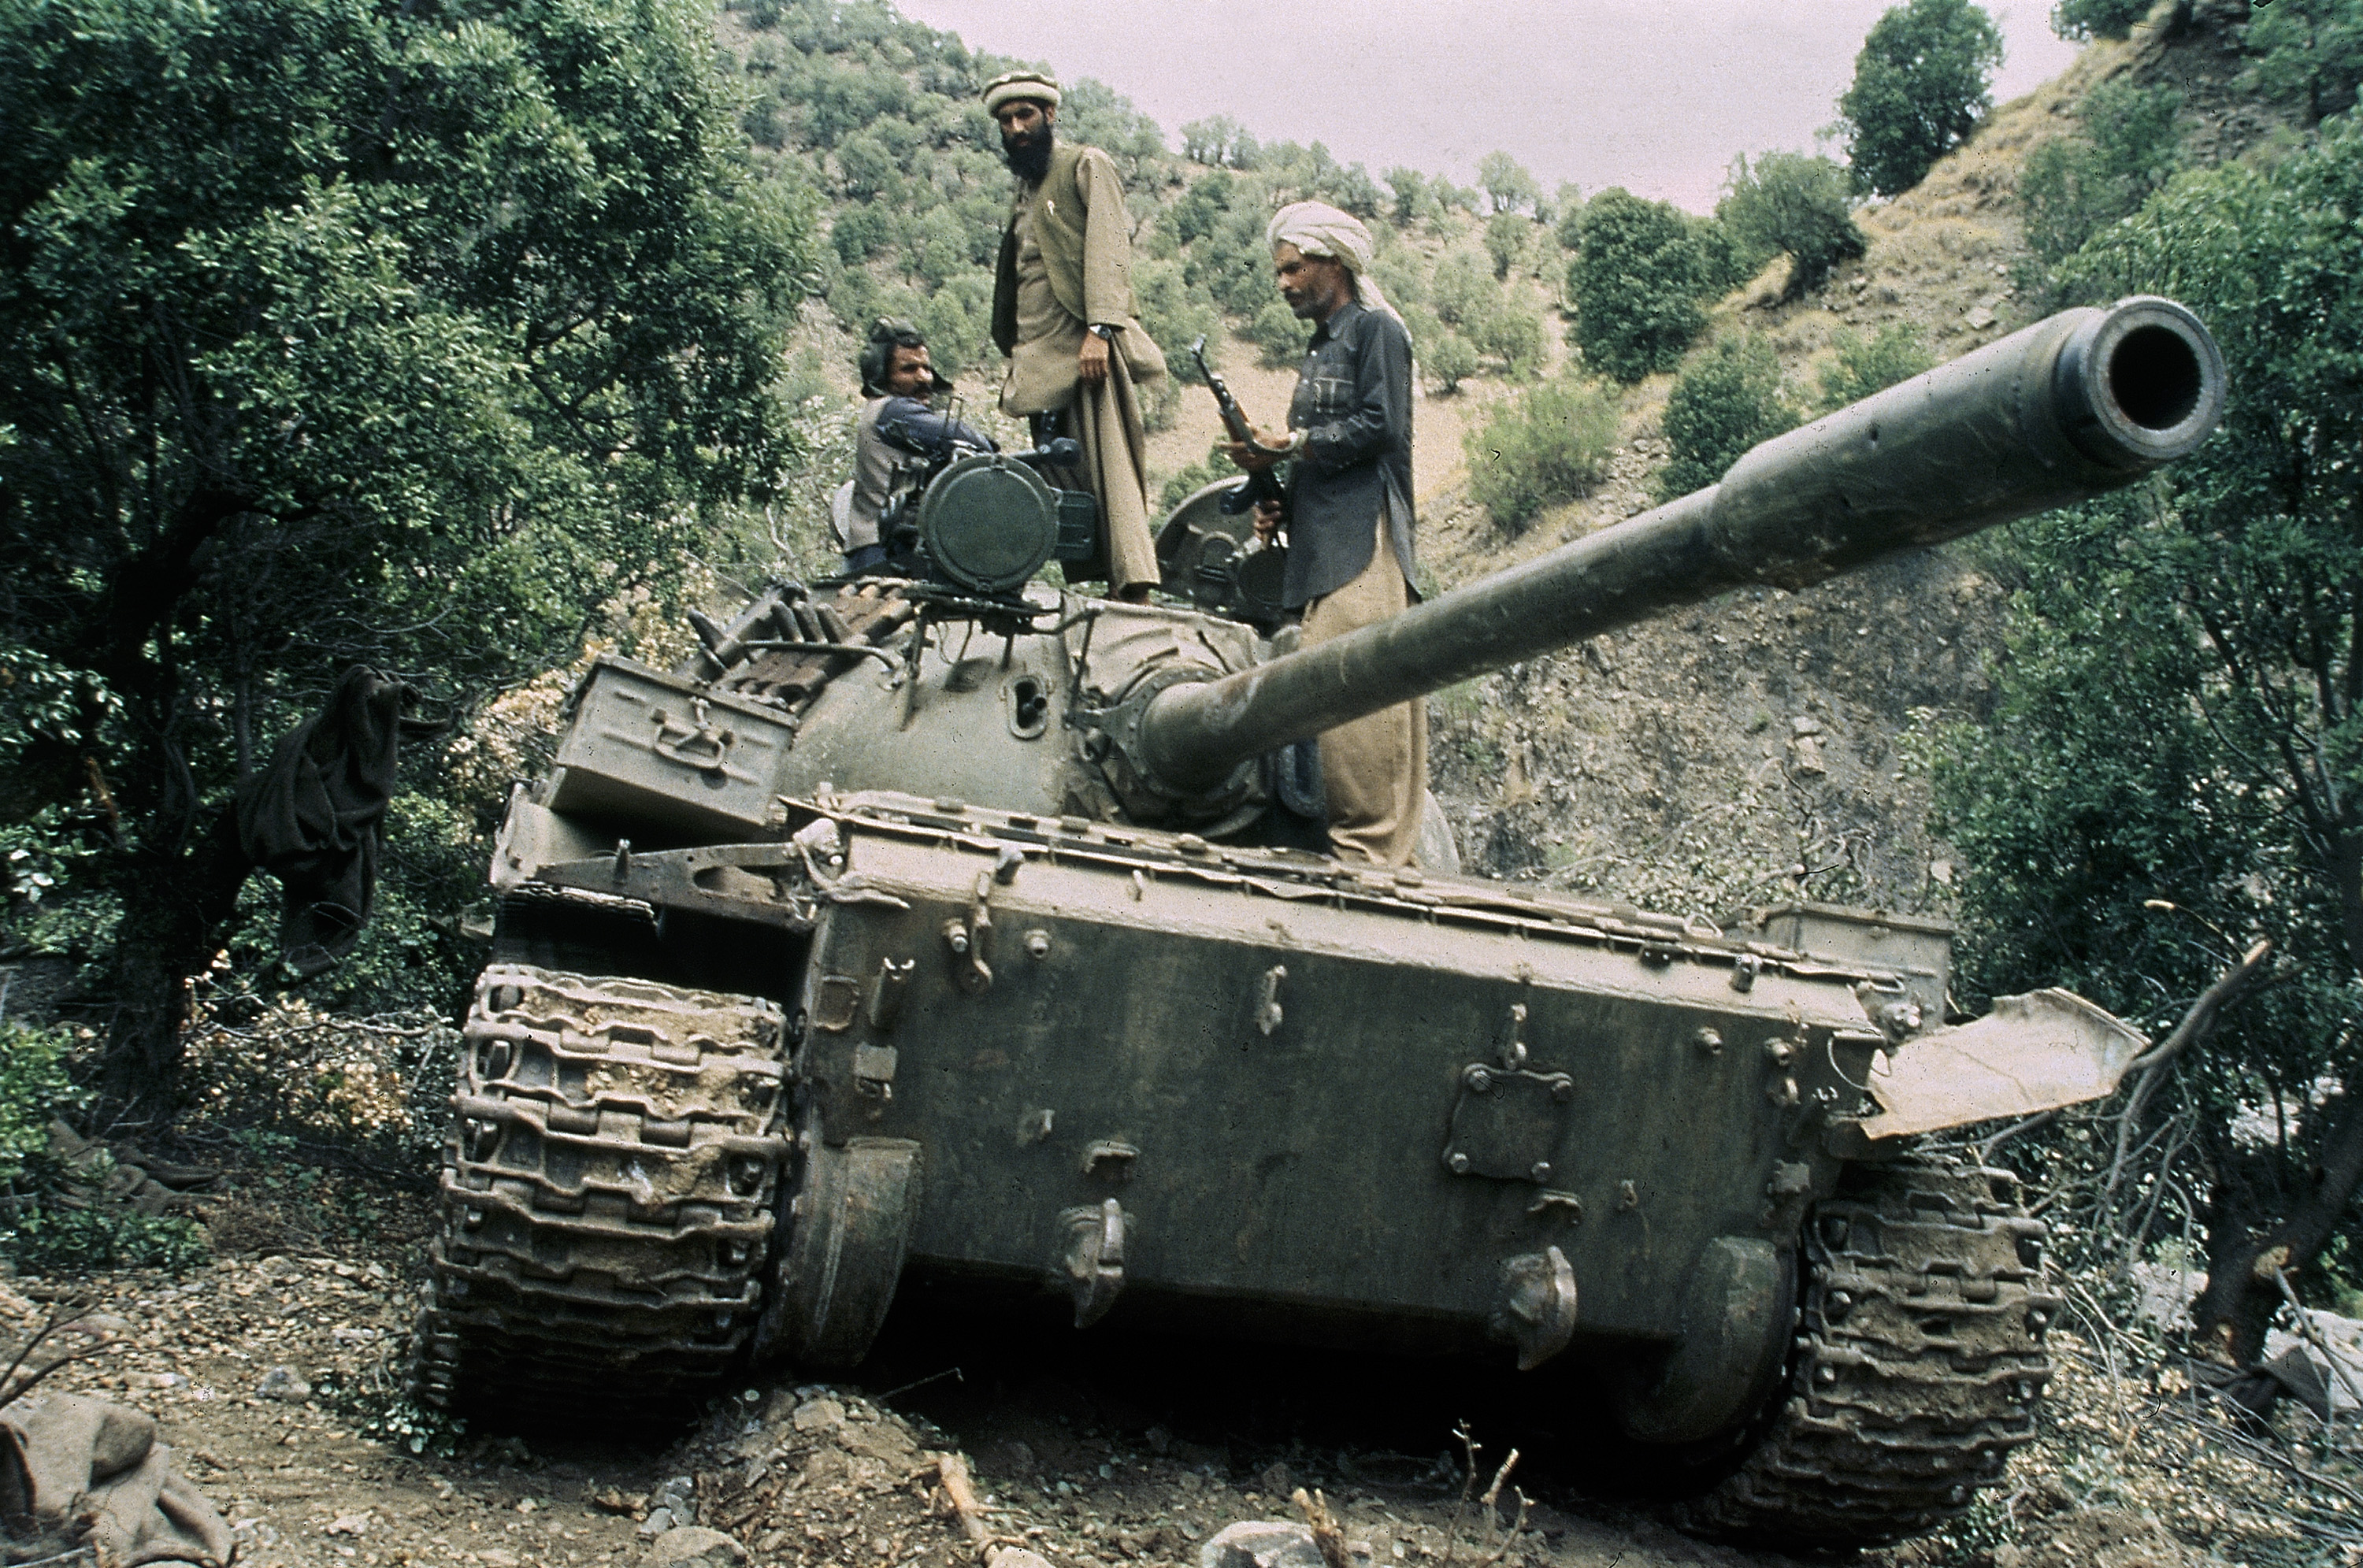 FILE - Mujahedeen guerrillas sit atop a captured Russian T-55 tank in 1987. The U.S. supported the anti-communists rebels against the Soviets.